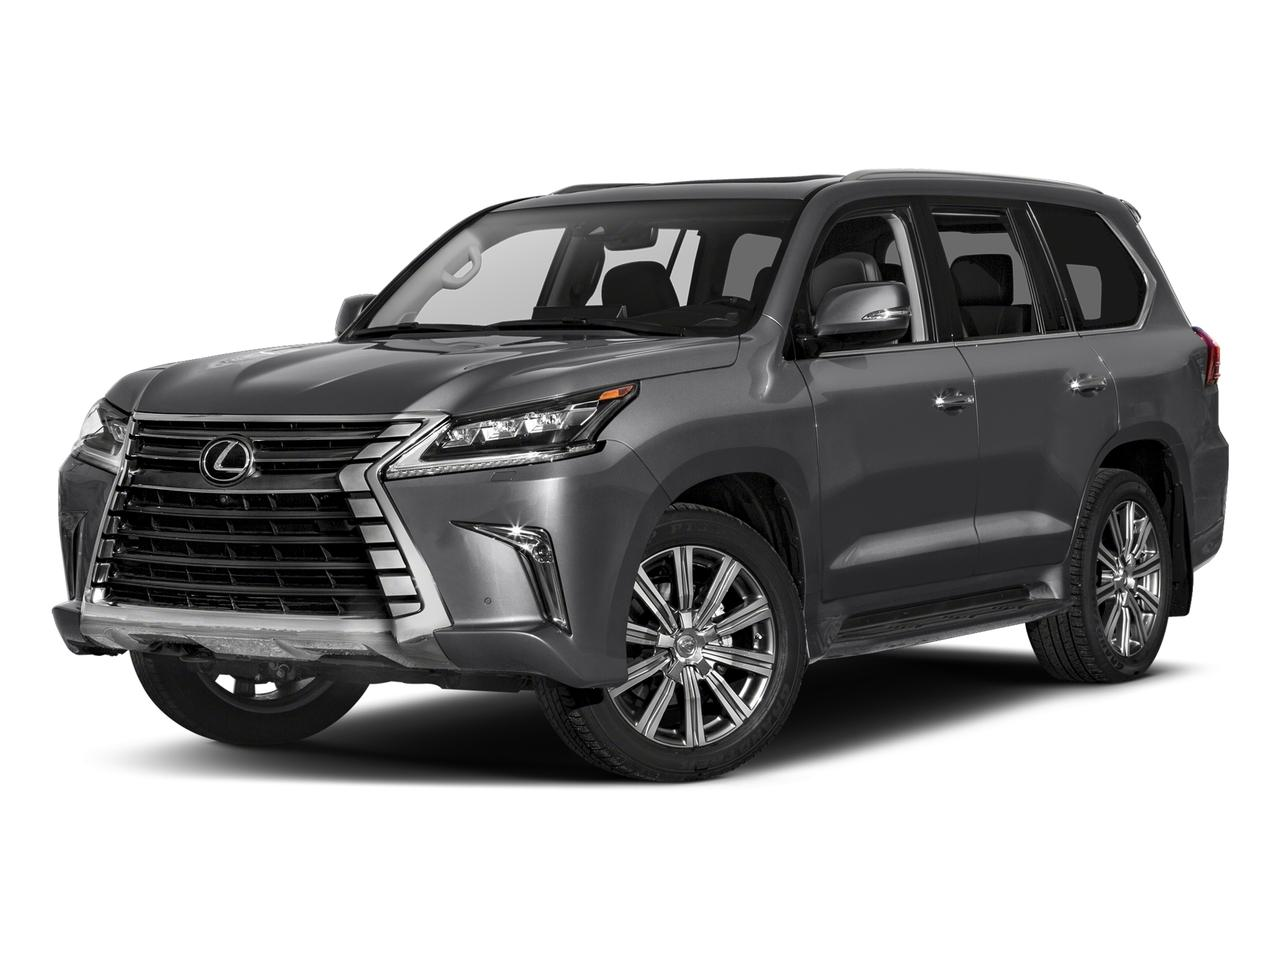 2017 Lexus LX 570 Vehicle Photo in Houston, TX 77546